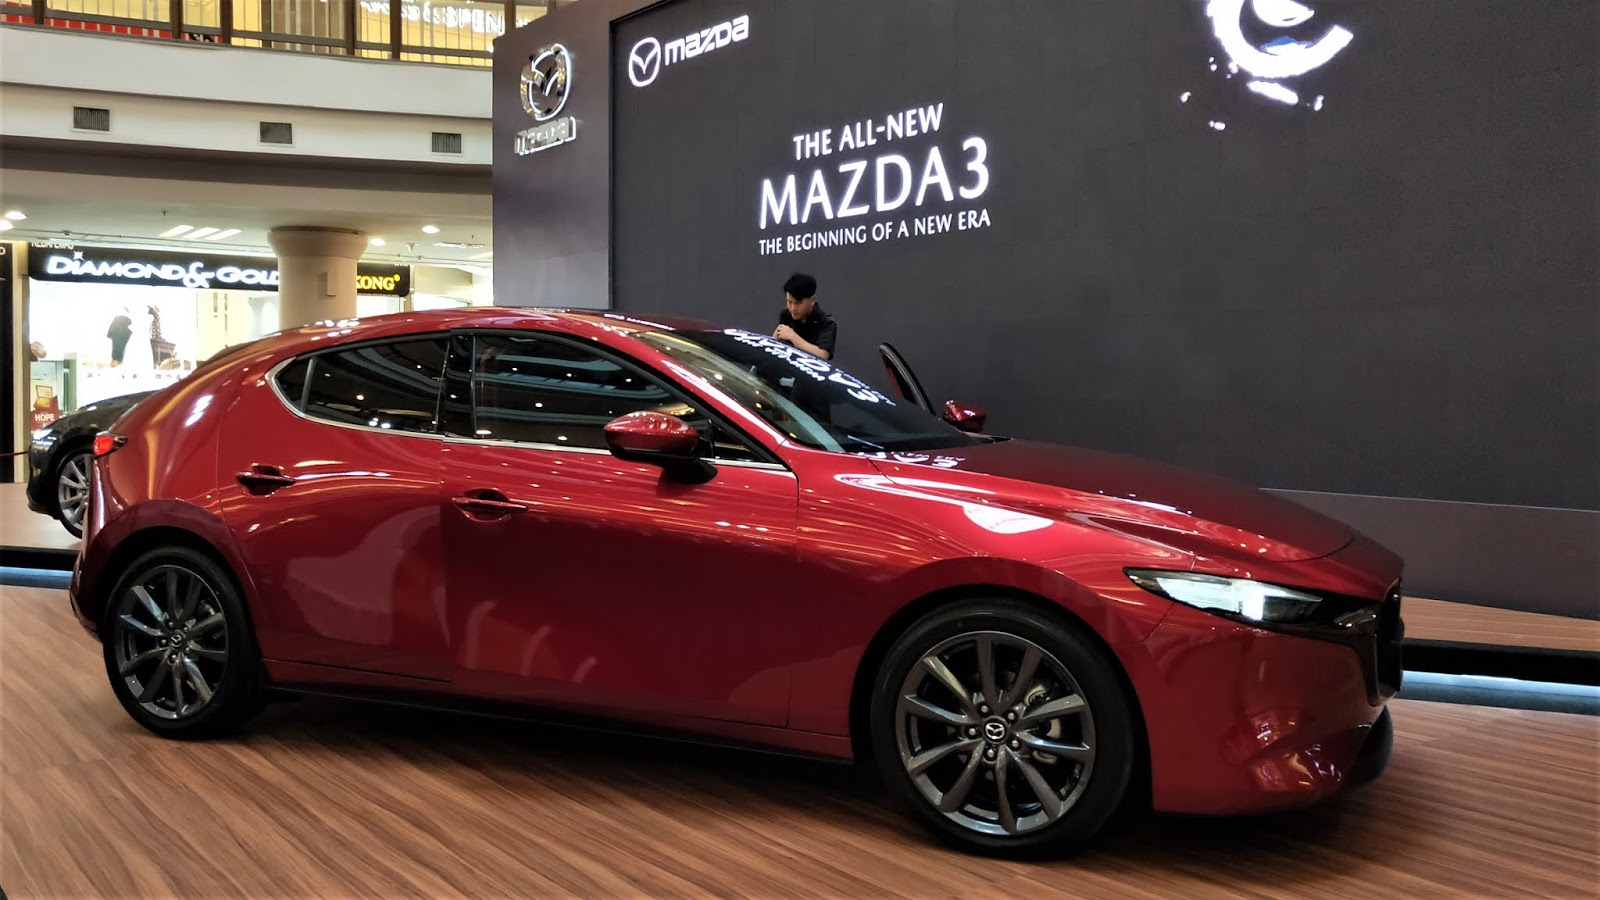 Motoring-Malaysia: The All-New 2019 Mazda 3 is Launched in